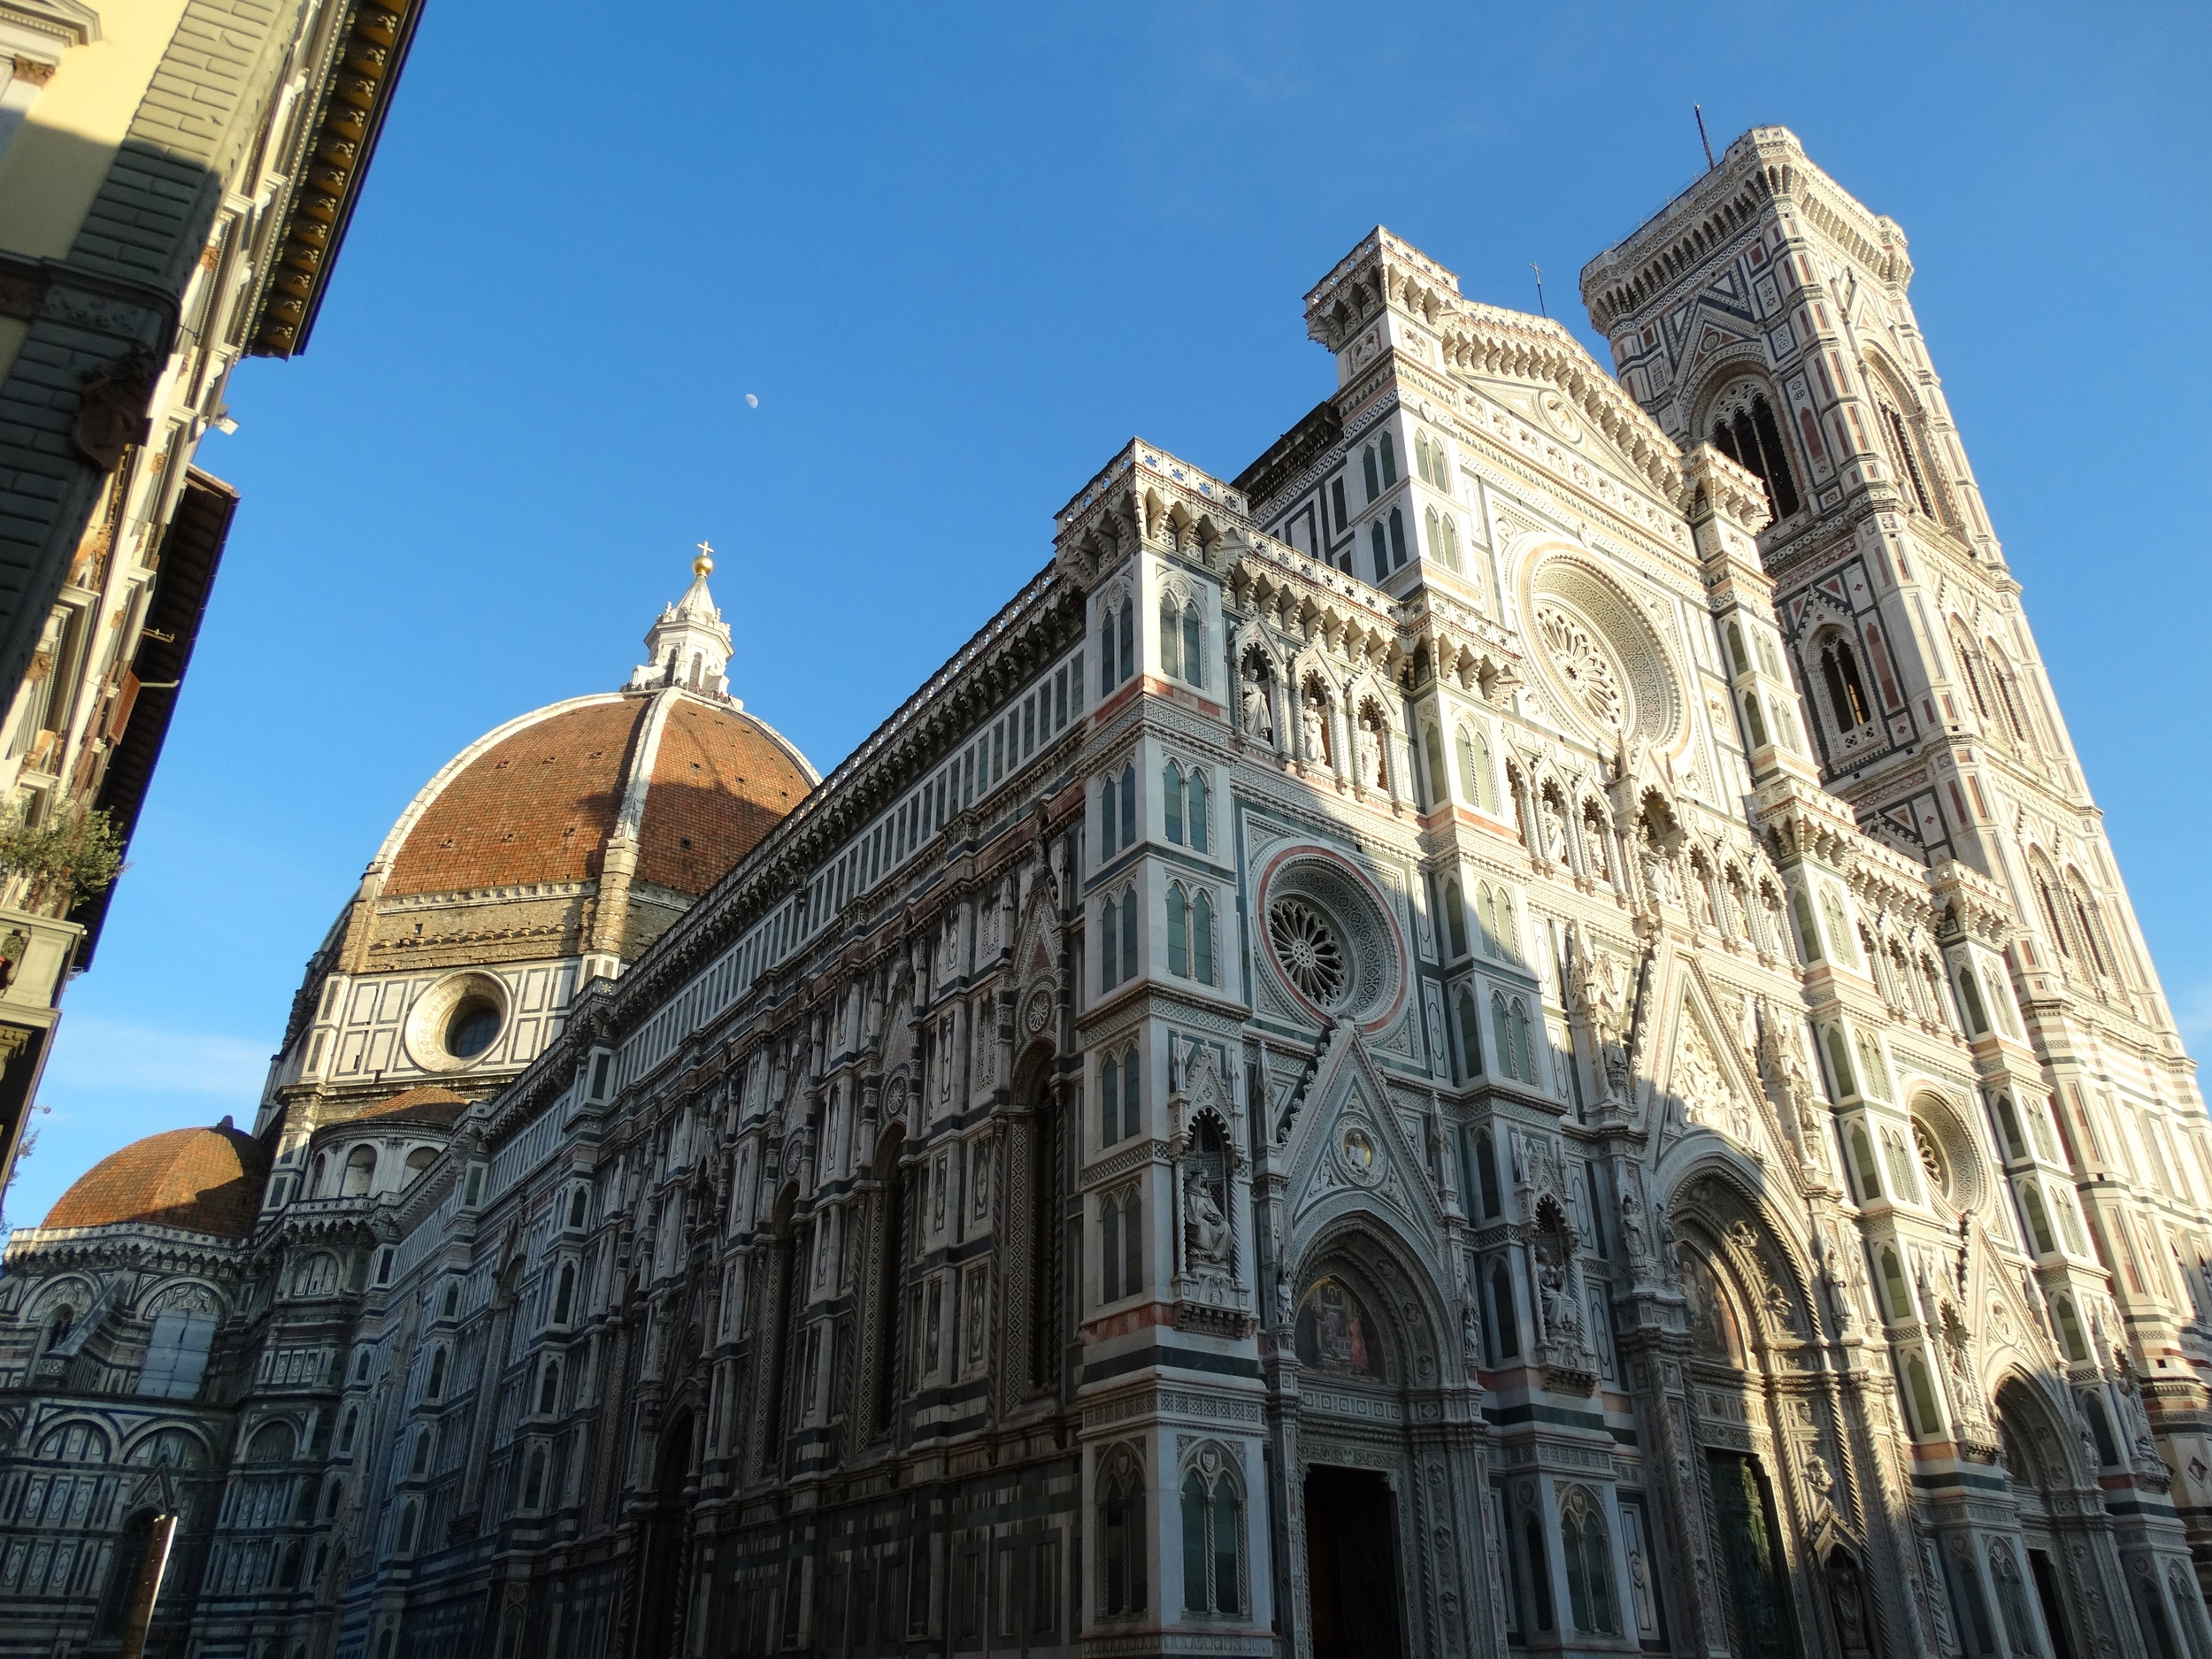 The cathedral of Florence - a wonder